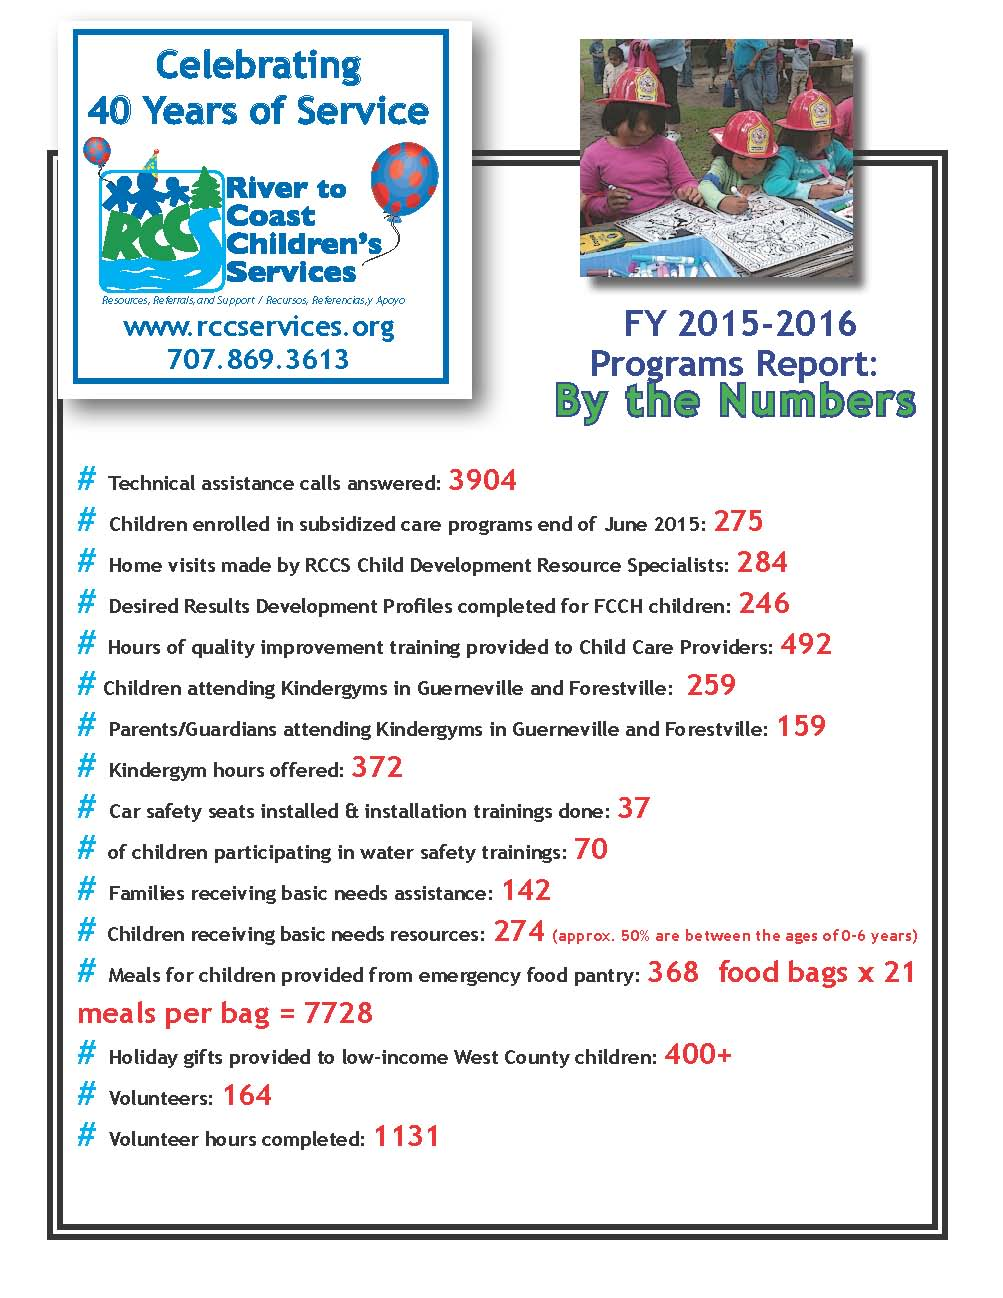 progams report for 2015 2016